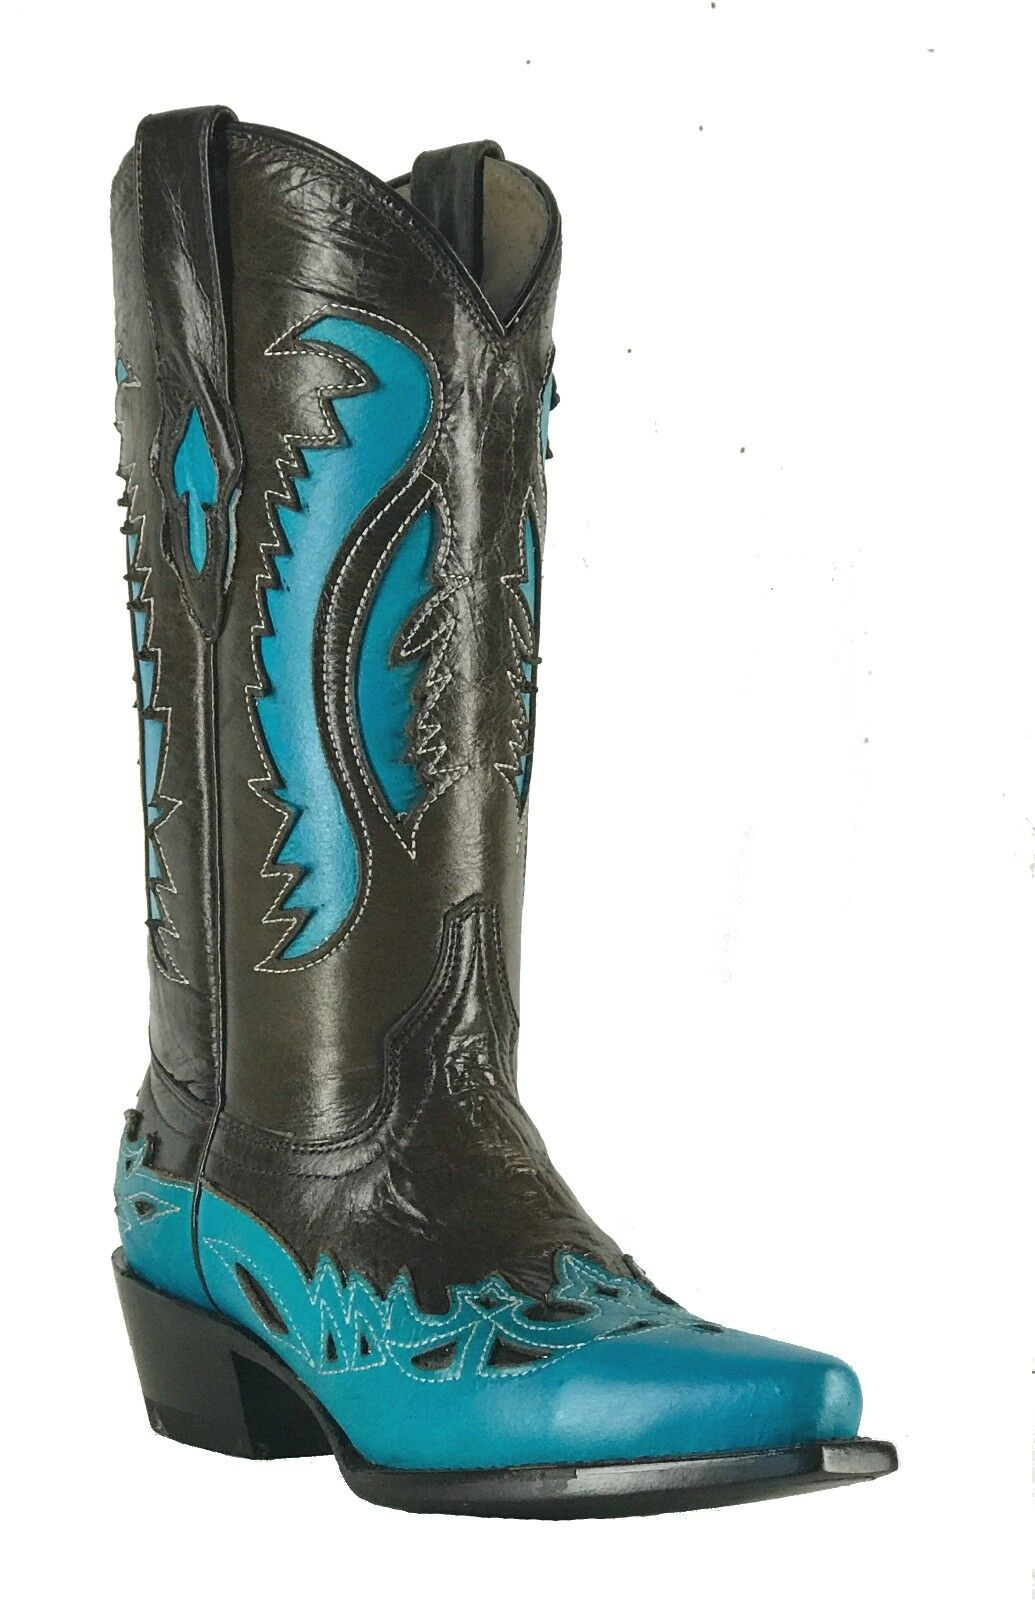 Women's New Leather Studs Cowgirl Western Biker Boots Snip Brown bluee Sale